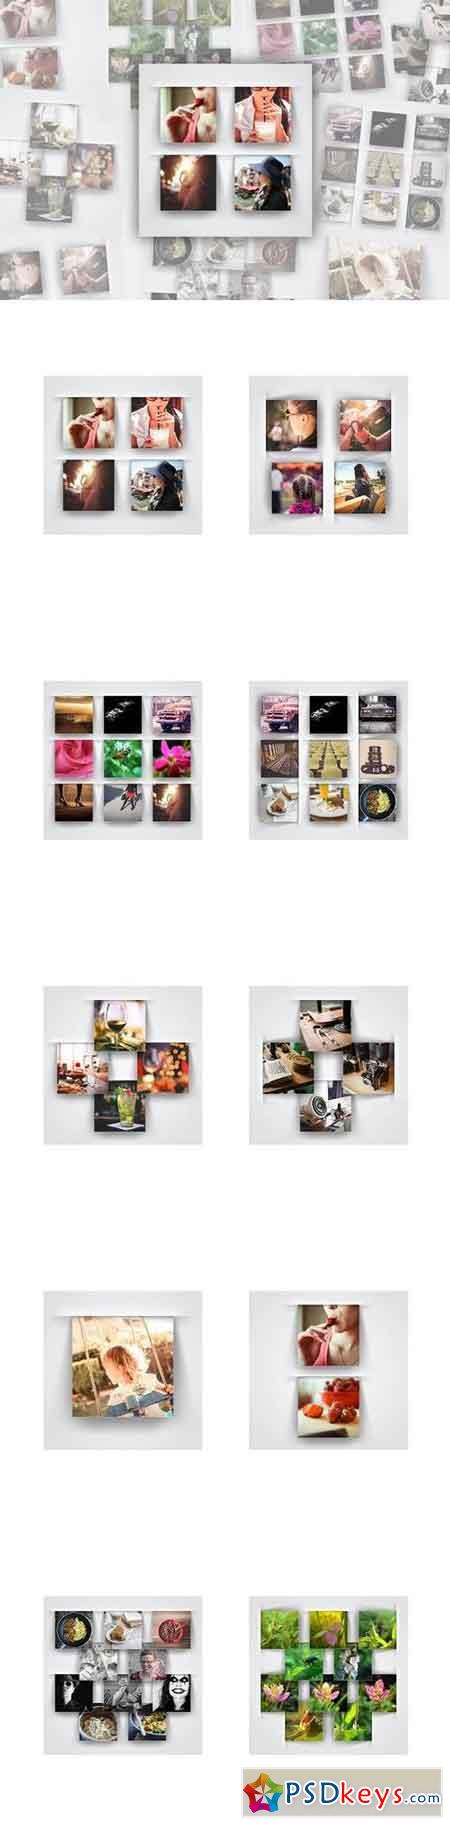 Modern Square Photo Frame Templates